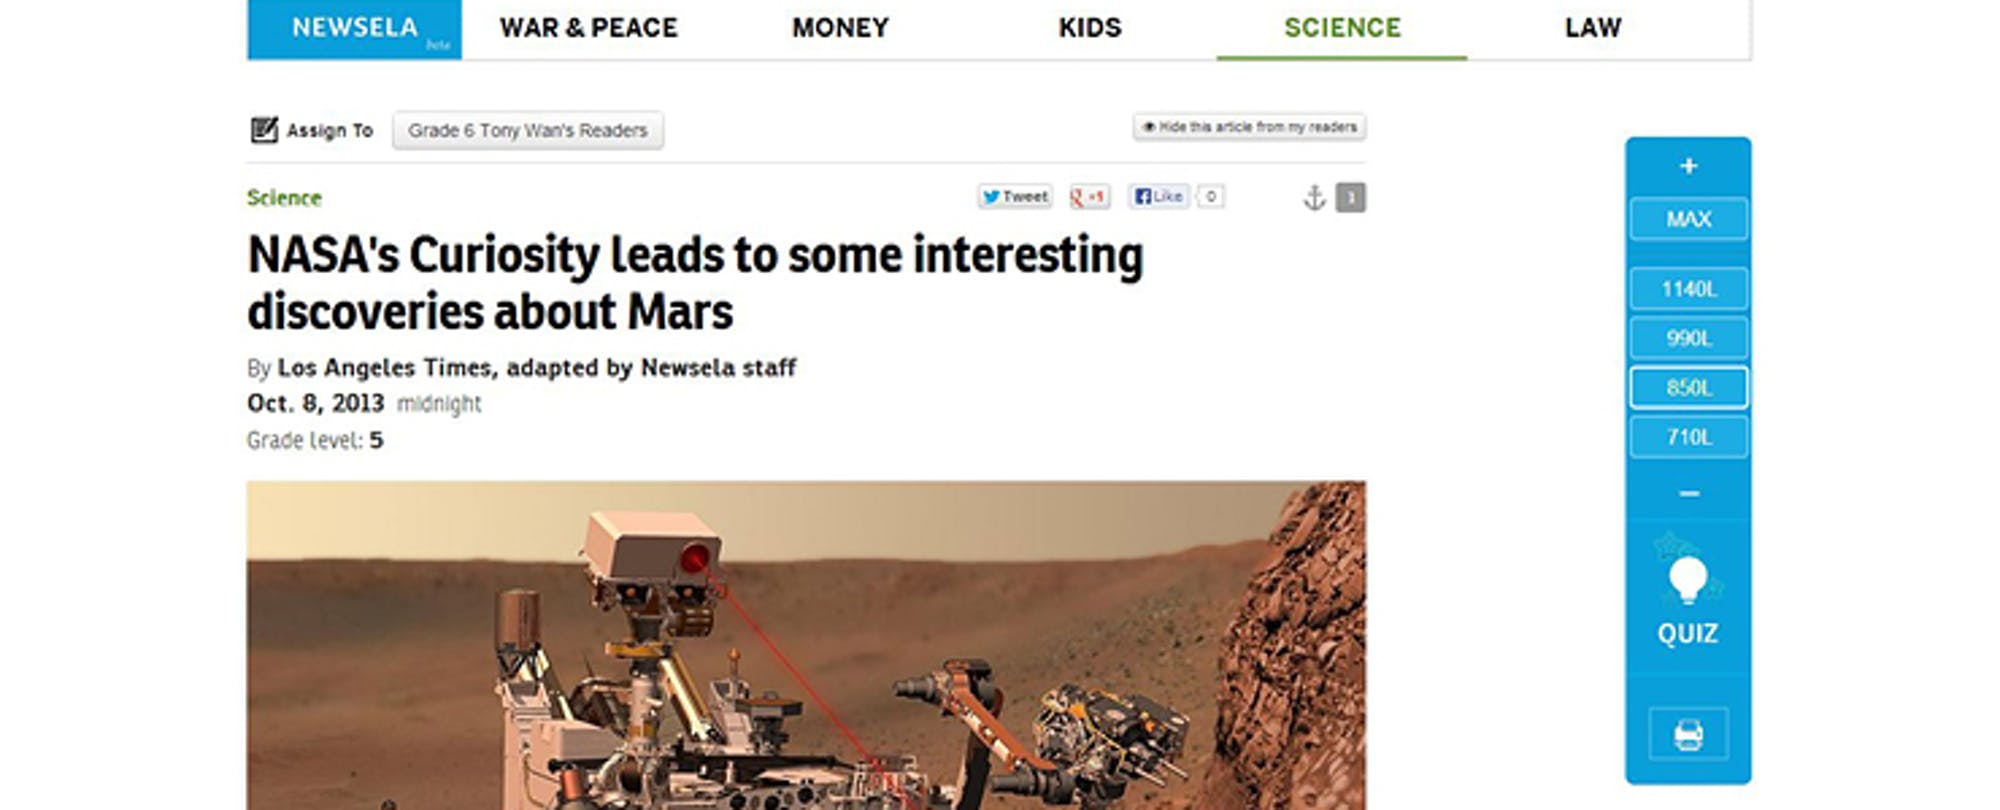 Newsela Raises $1.2M to Help Kids Read the News